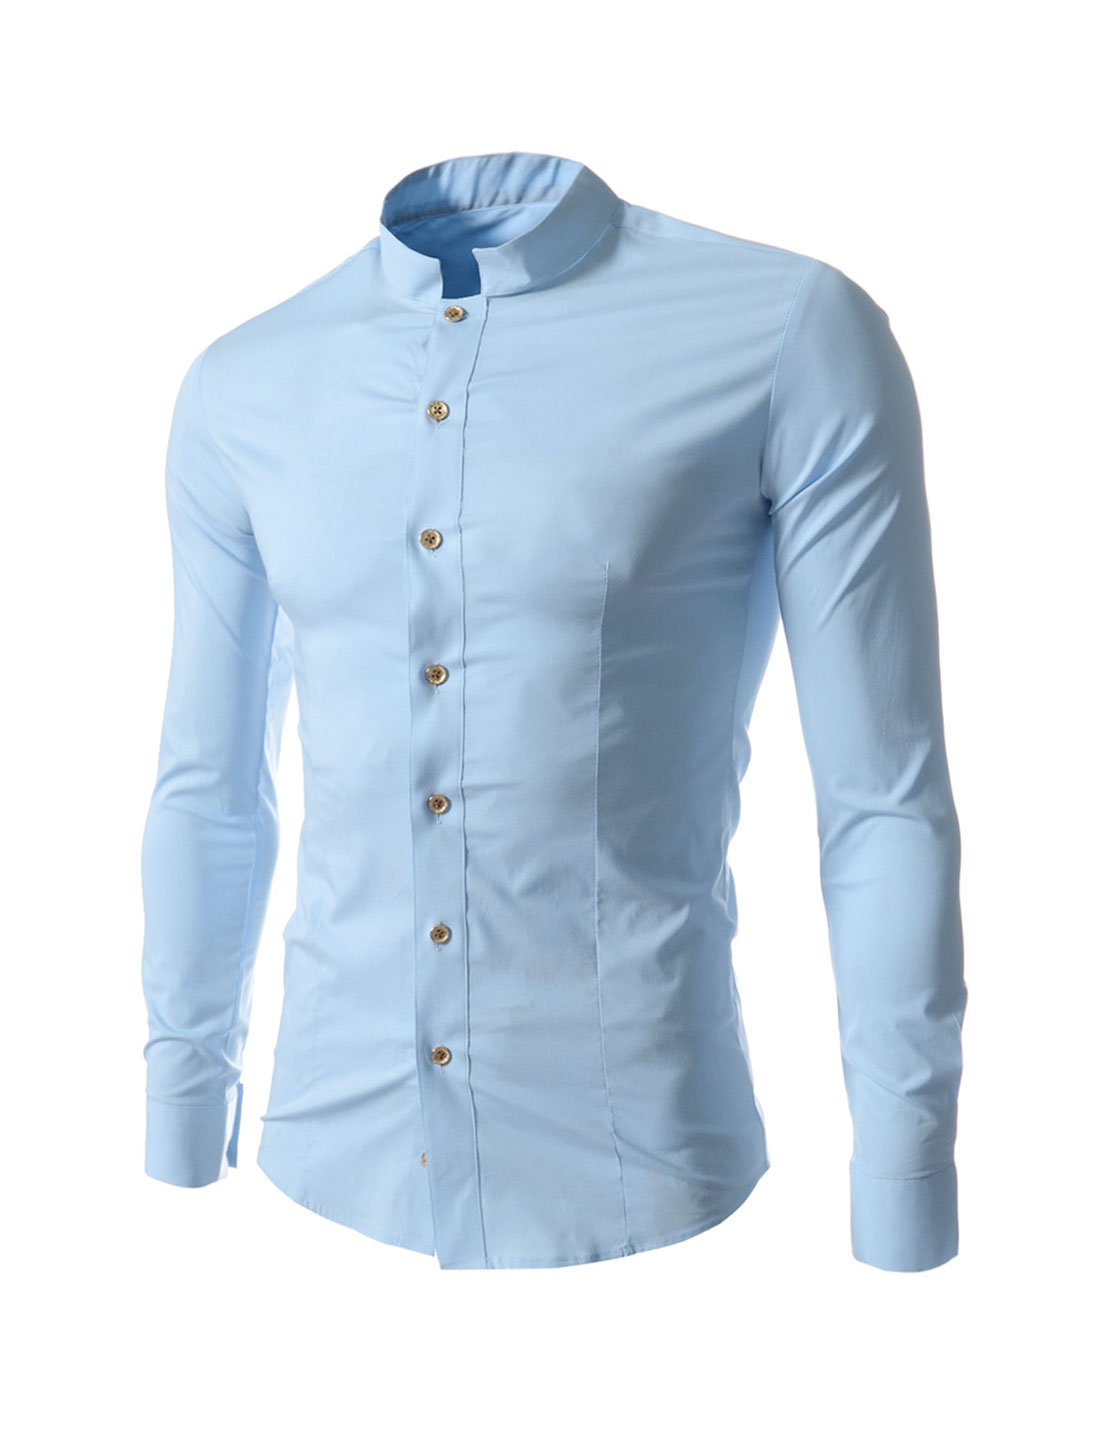 Men Stand Collar Long Sleeves Single Breasted Chic Shirt Sky Blue M